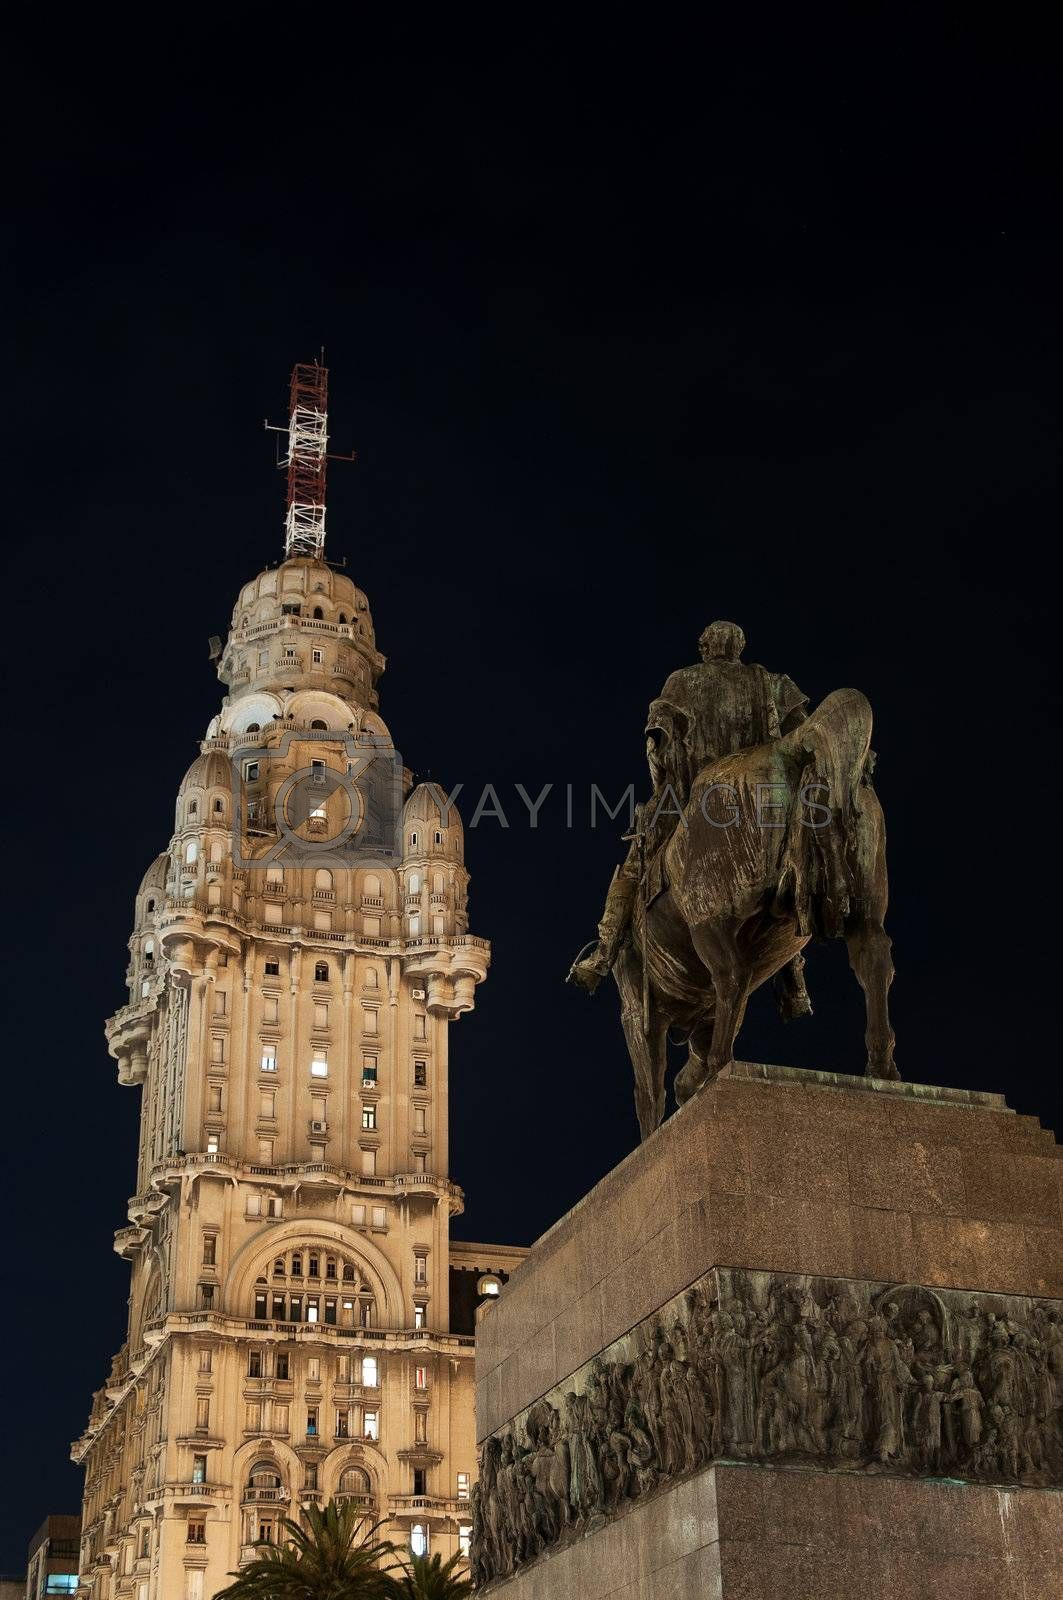 Public Statue and Skyscraper at Night by jkraft5